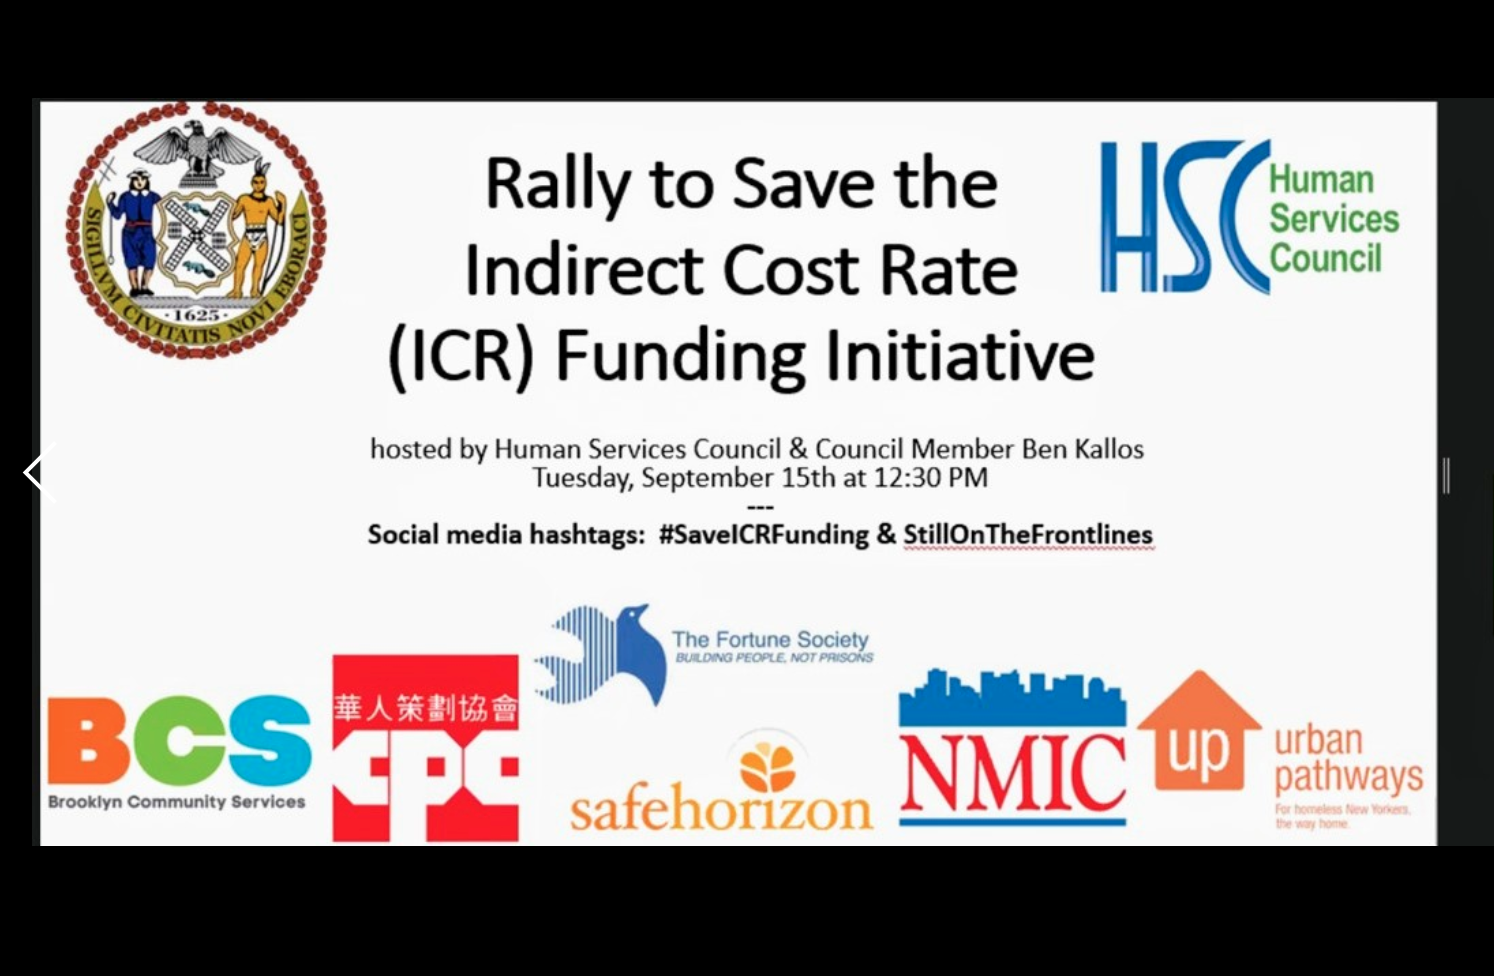 CPC Rallies with Nonprofits to Save the Indirect Cost Rate - Presentation Slide 1